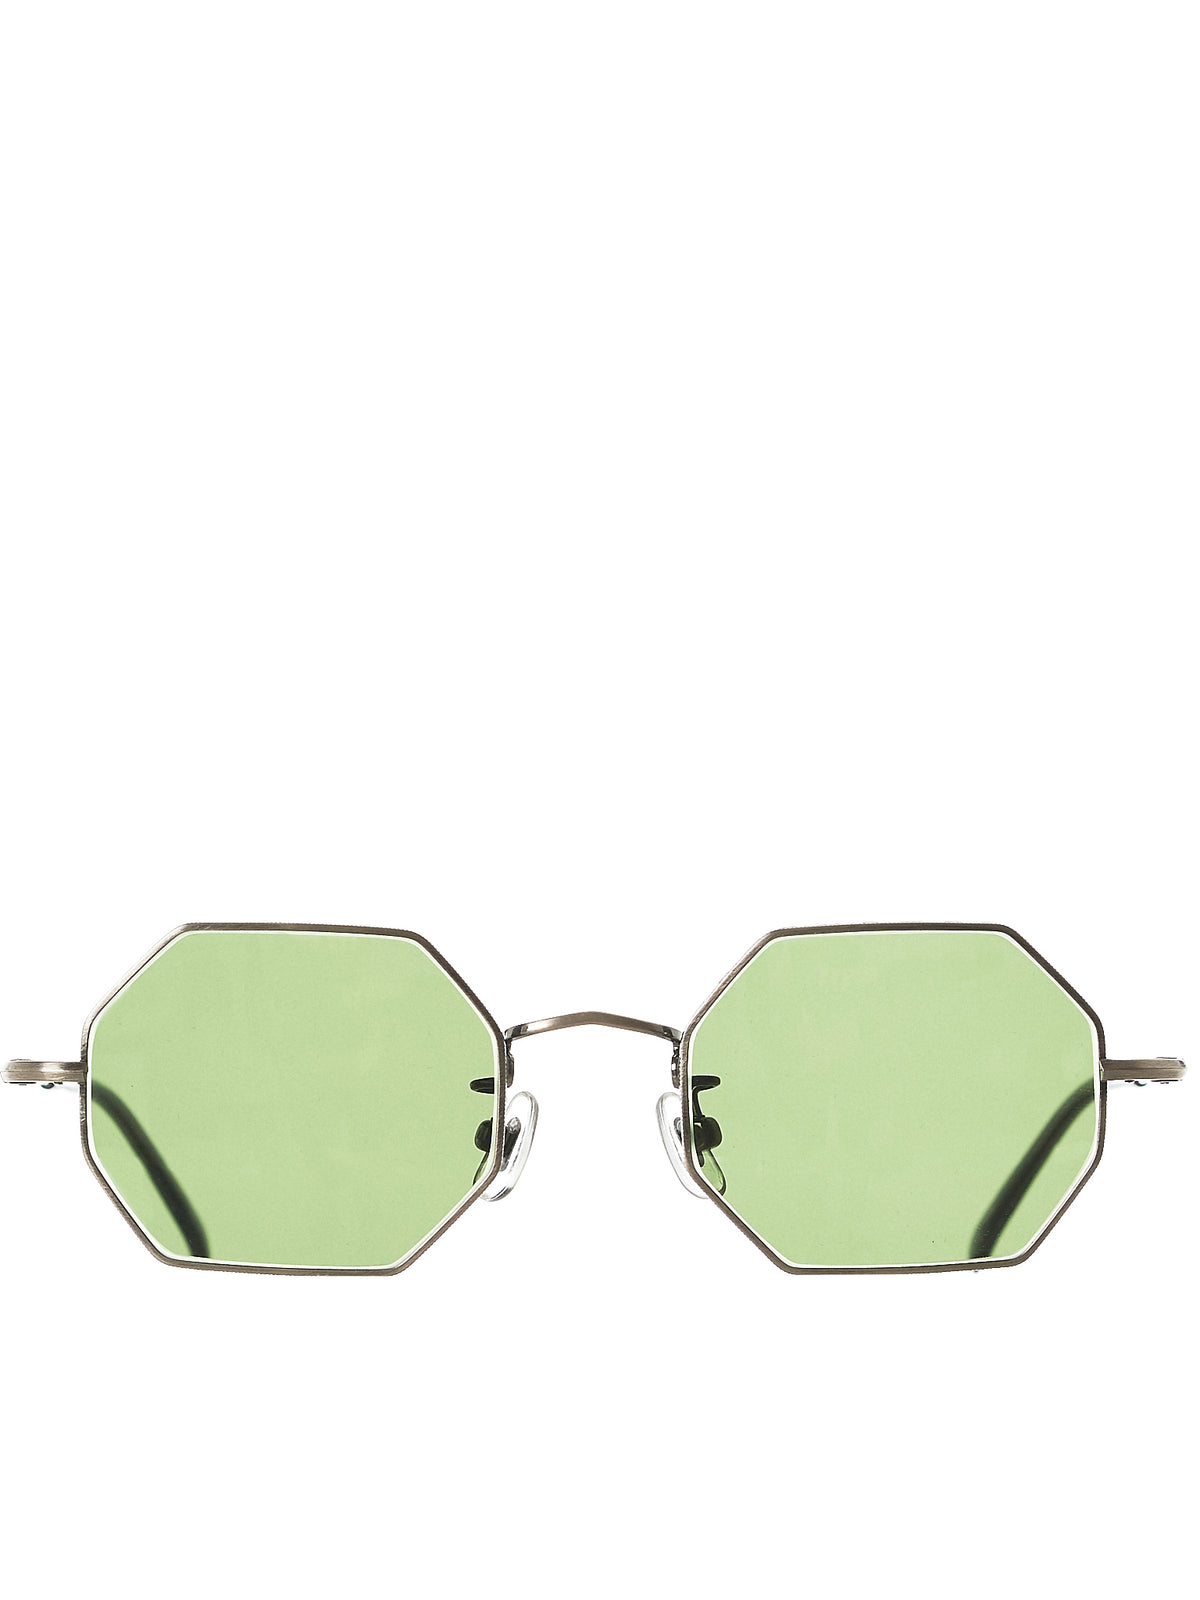 PTR Octagon Sunglasses (ST-TITAN-PTR-OCTAGON-AS-GREEN4)